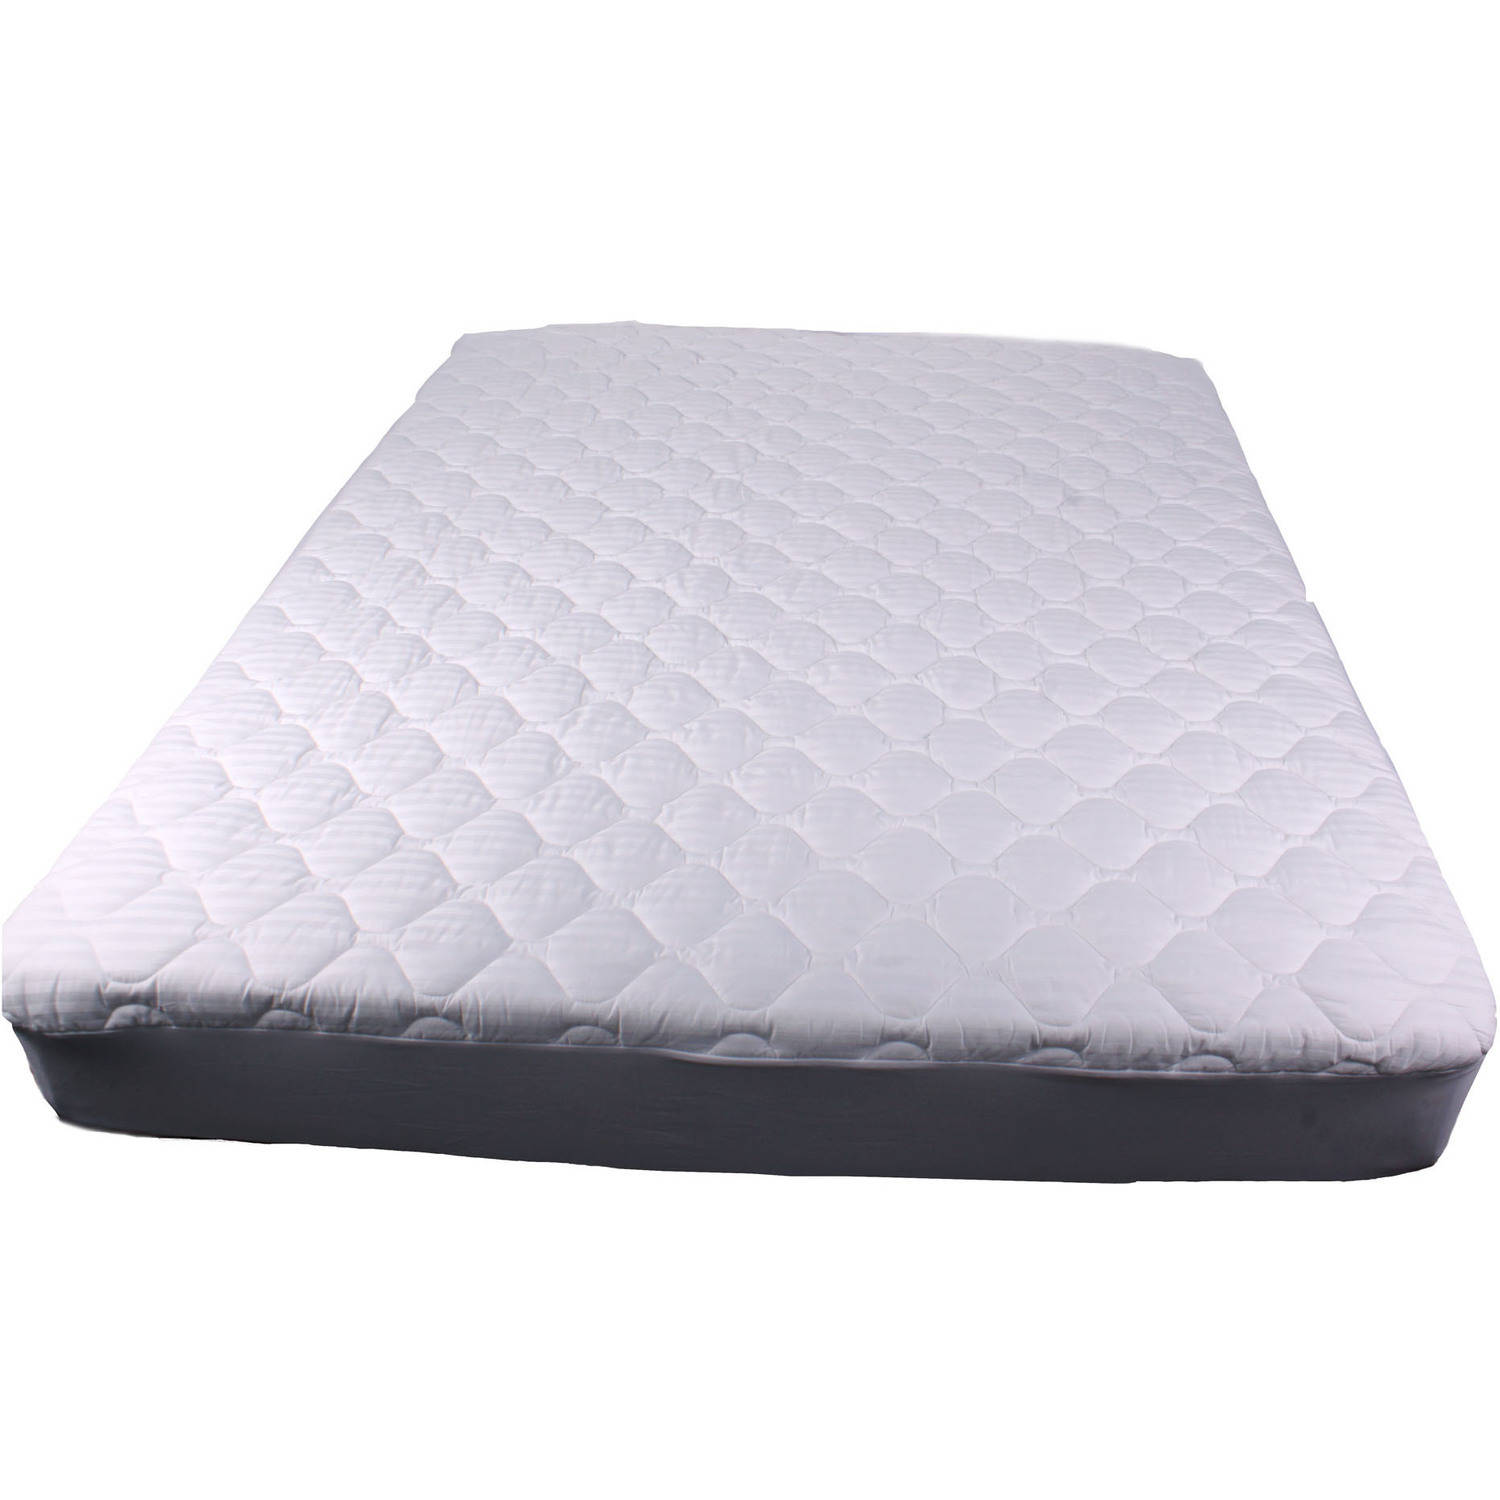 Waterproof Mattress Pad Fitted Cotton Hypoallergenic Cover